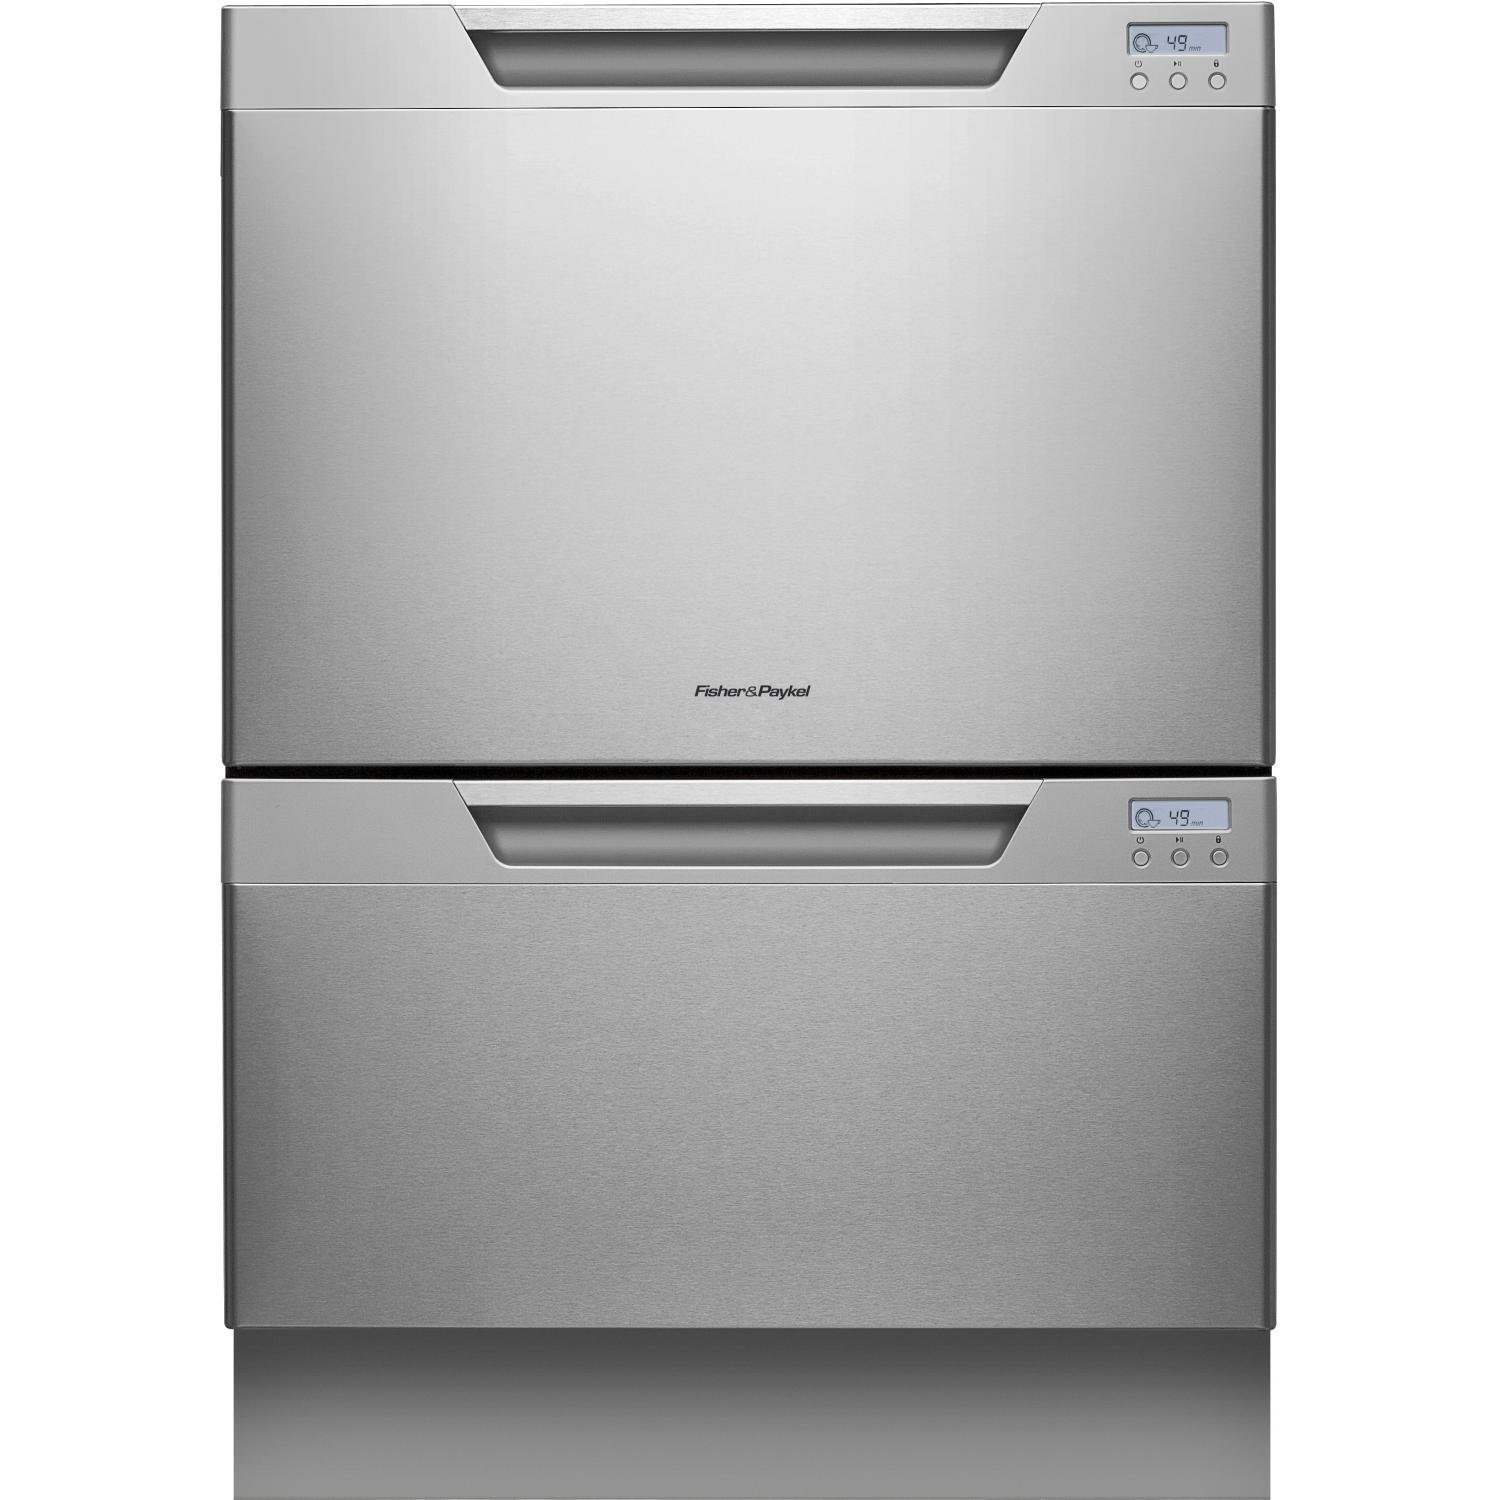 "Fisher Paykel DD24DCTX7 Dish Drawer 24"" Stainless Steel Semi - Integrated Dishwasher"